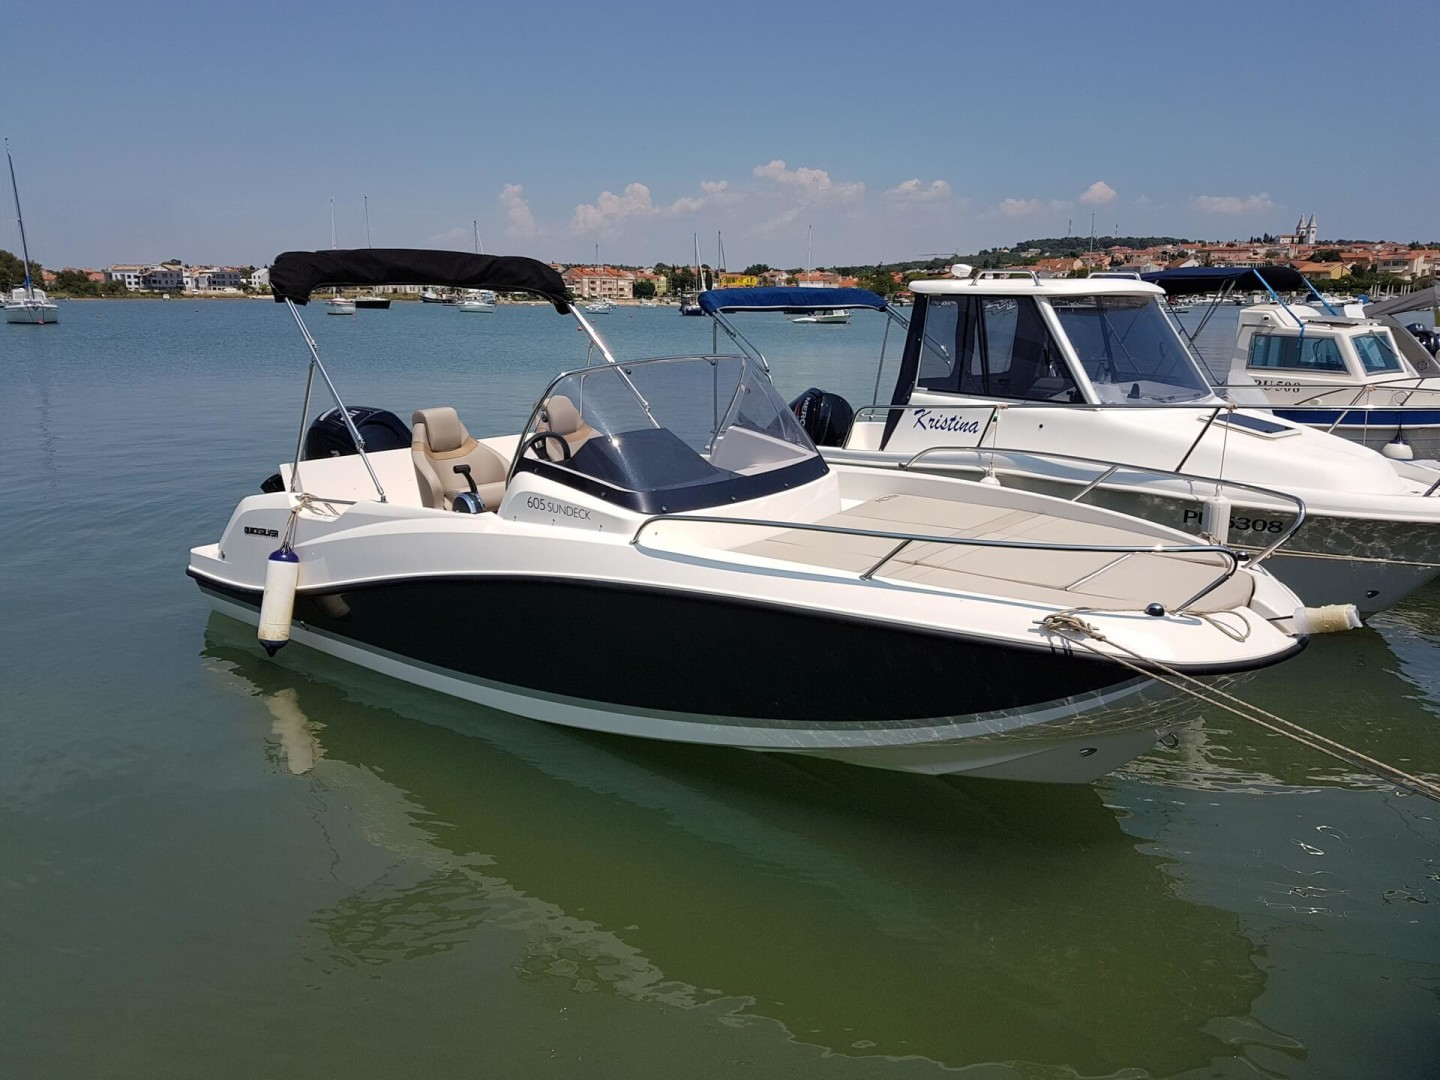 Quicksilver Active 605 1 pomer istria croatia party boat rental island hopping paddle surfing mercury